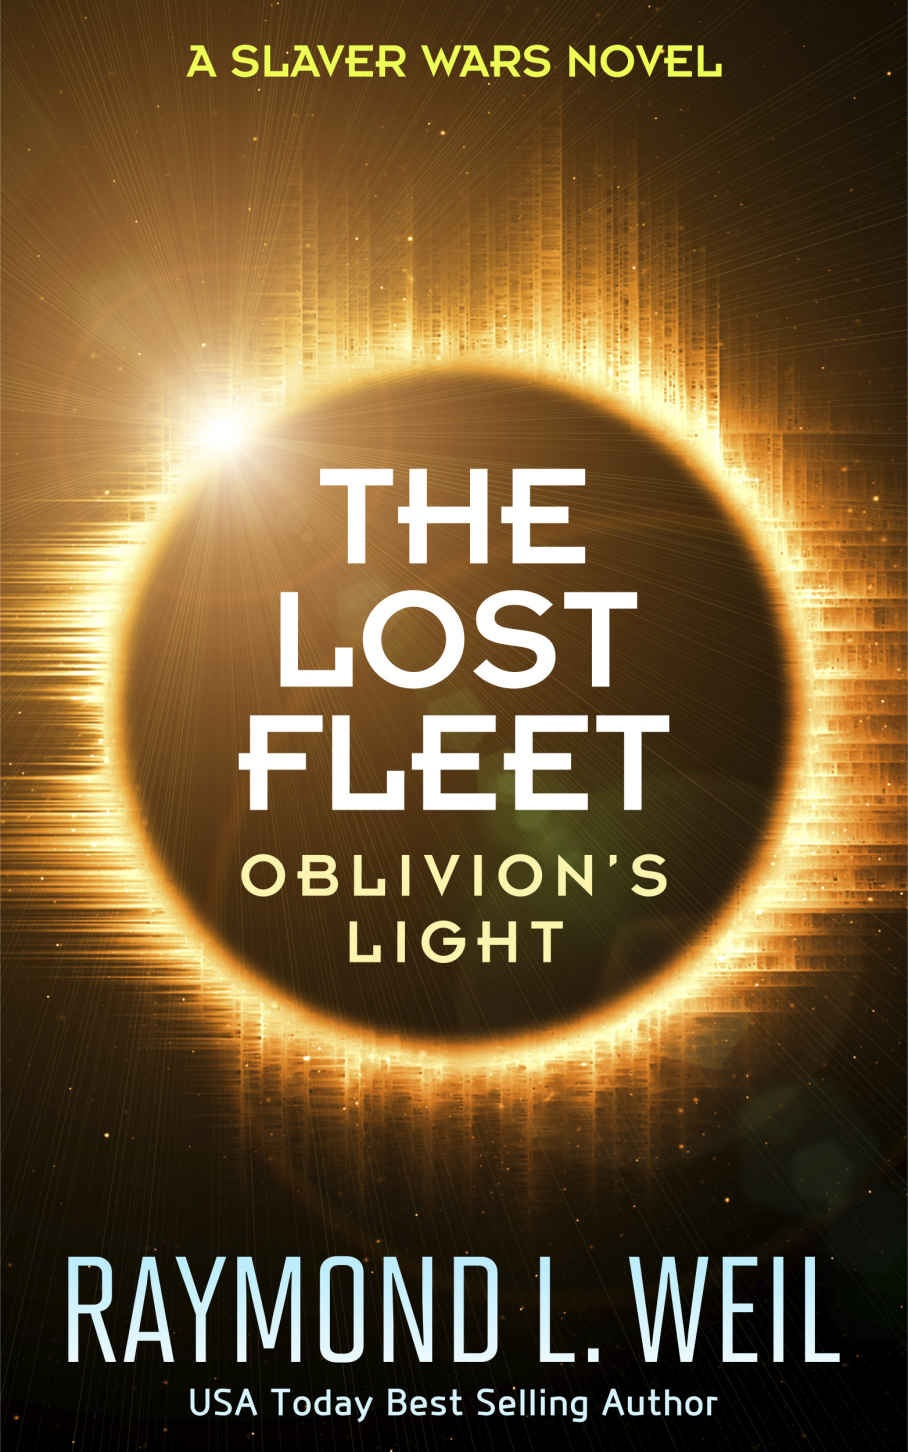 Oblivion's Light – Yet another entertaining book in the Slaver Wars/ The Lost Fleet series.